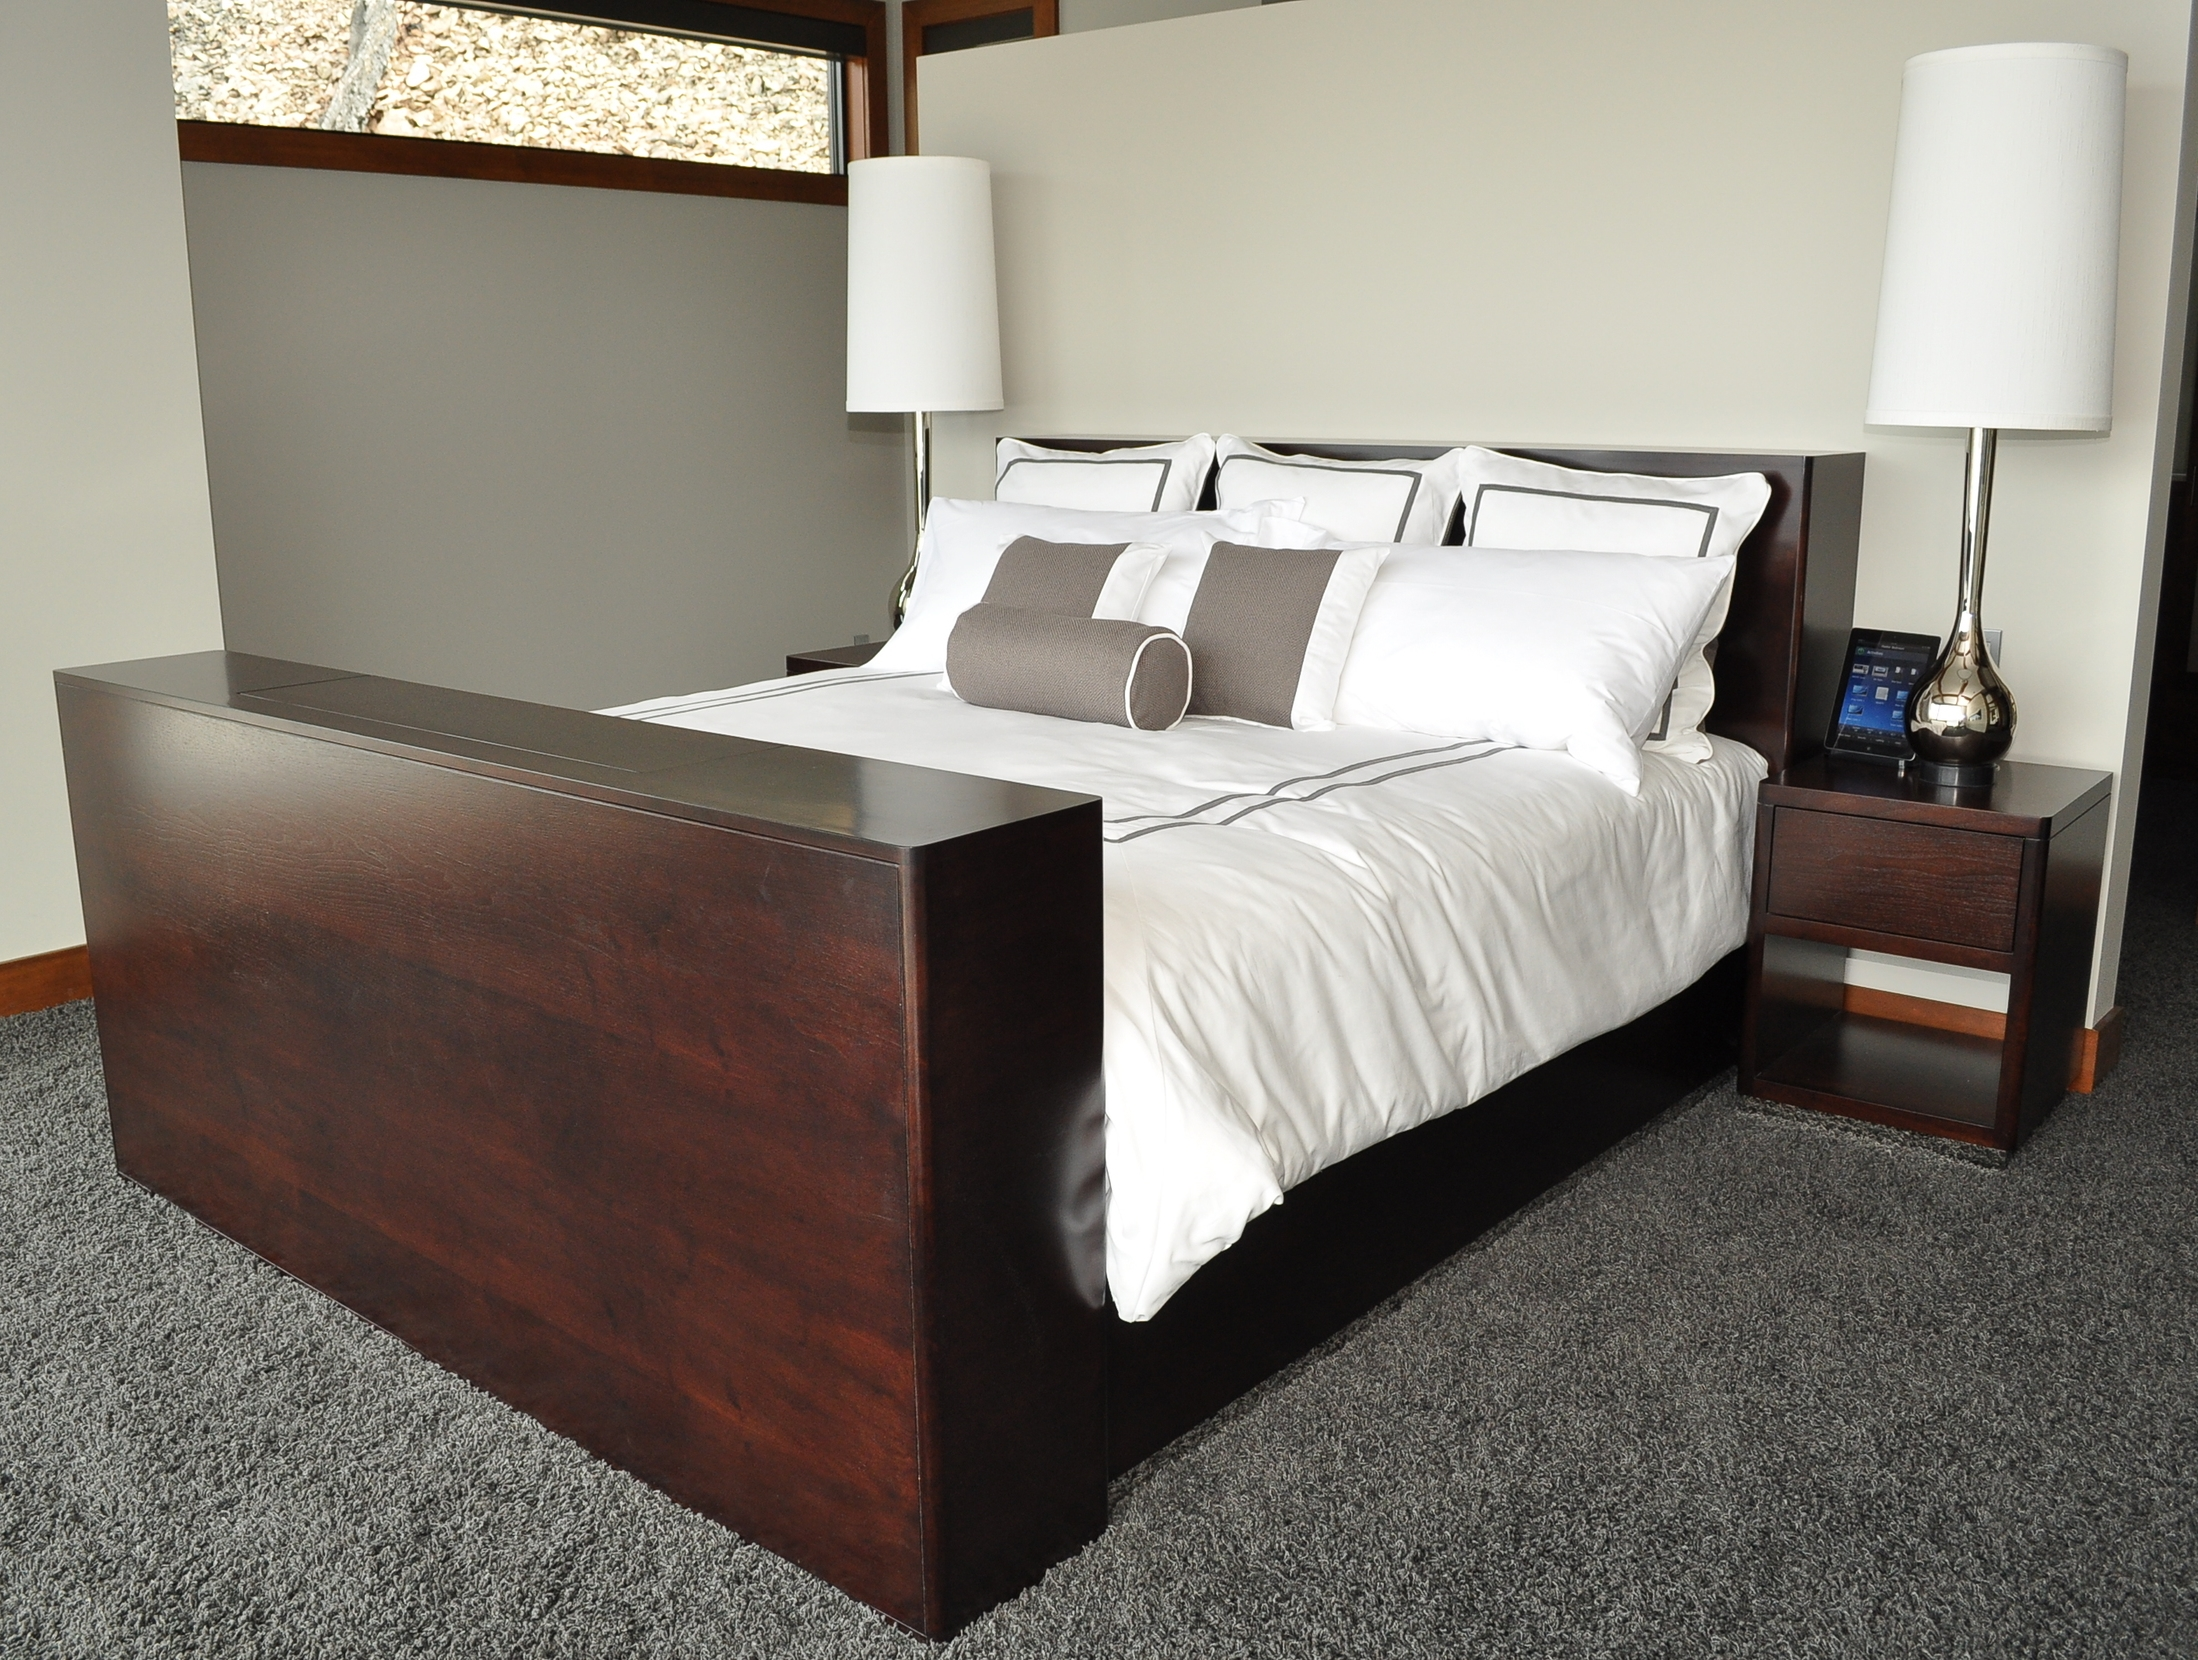 custom-walnut-bed-with-tv-lift-footboard-matching-nightstands.JPG